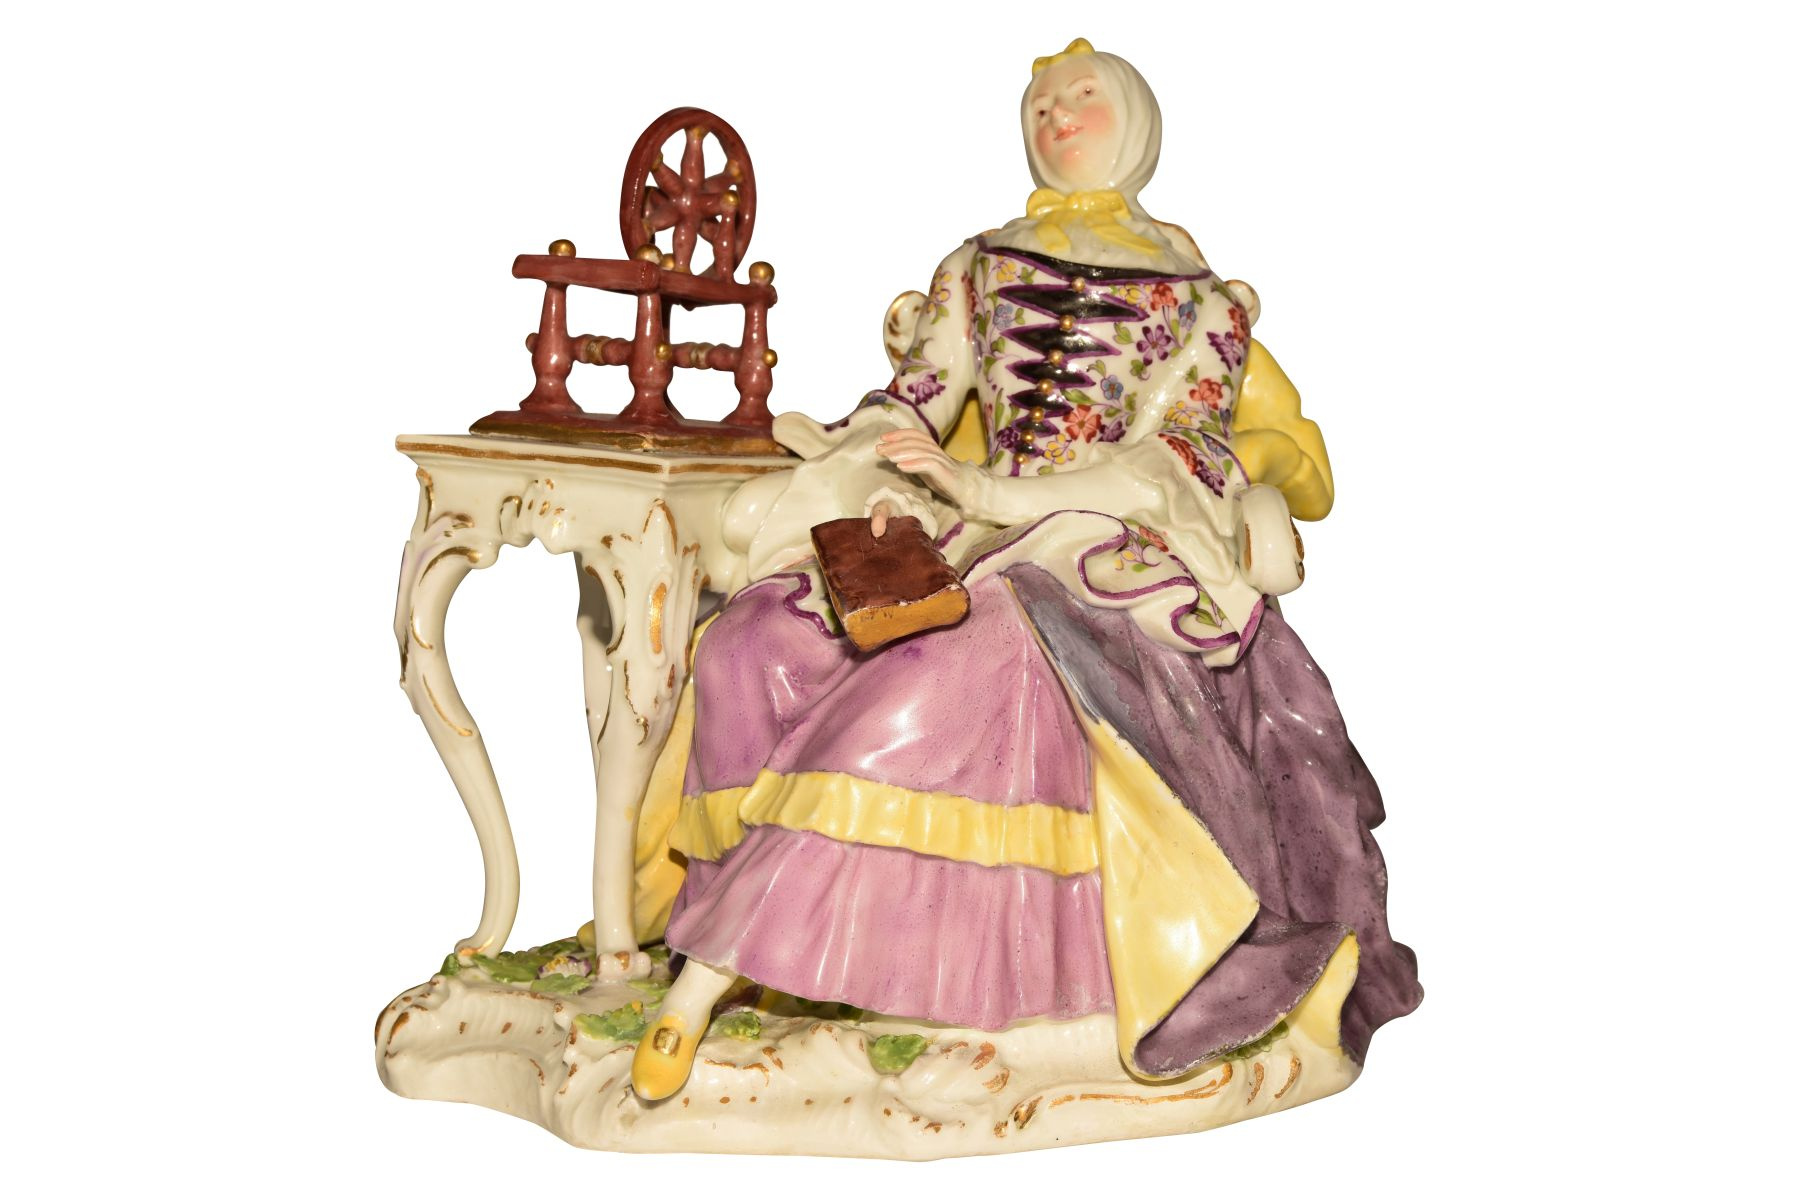 #116 Lady with Spinning Wheel Meissen around 1750 | Image